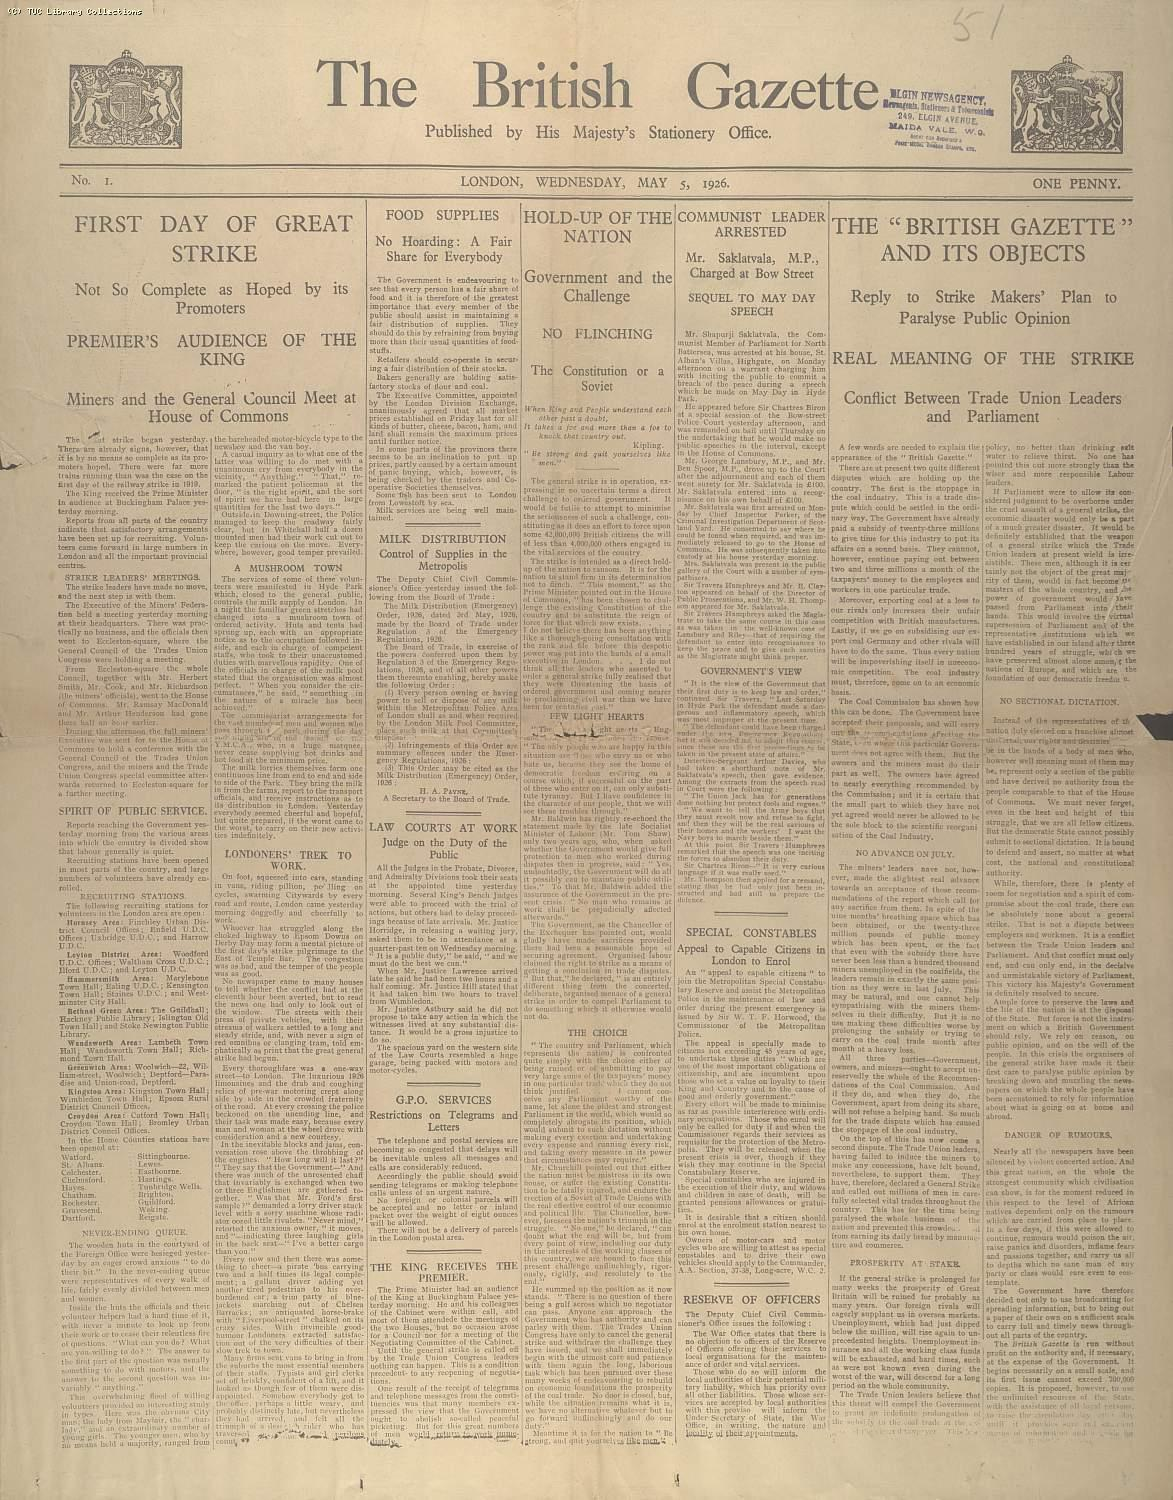 The British Gazette, 5 May 1926